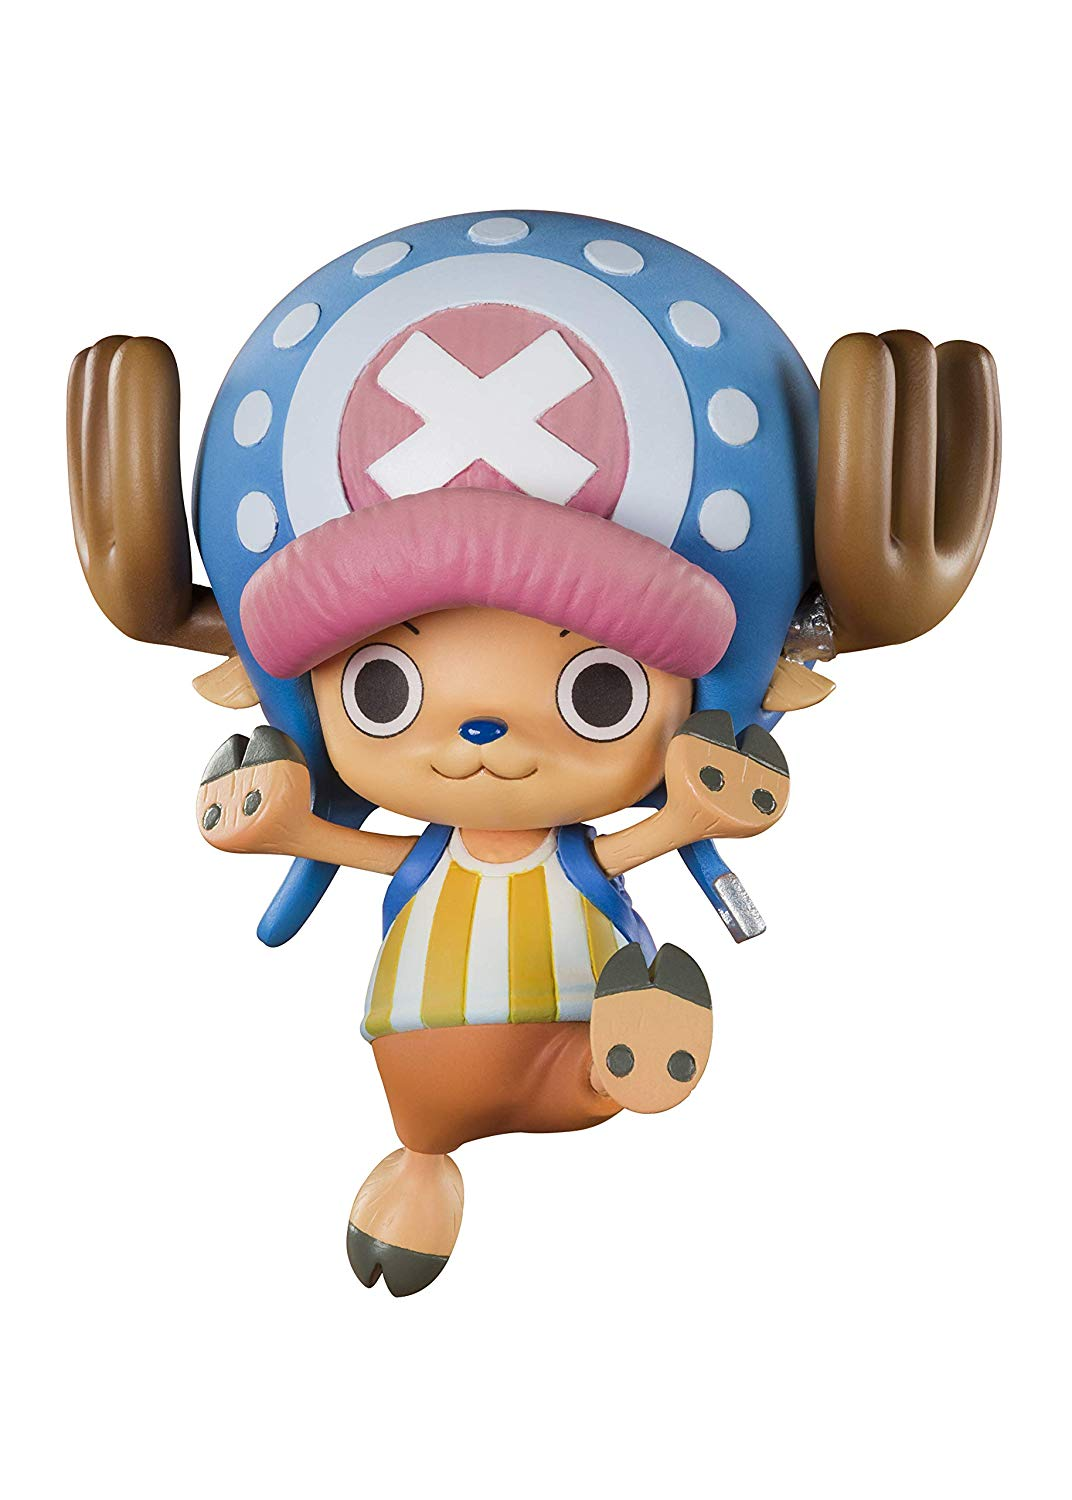 One Piece - Tony Tony Chopper - Figuarts ZERO - Cotton-Candy-Loving (Bandai Spirits)